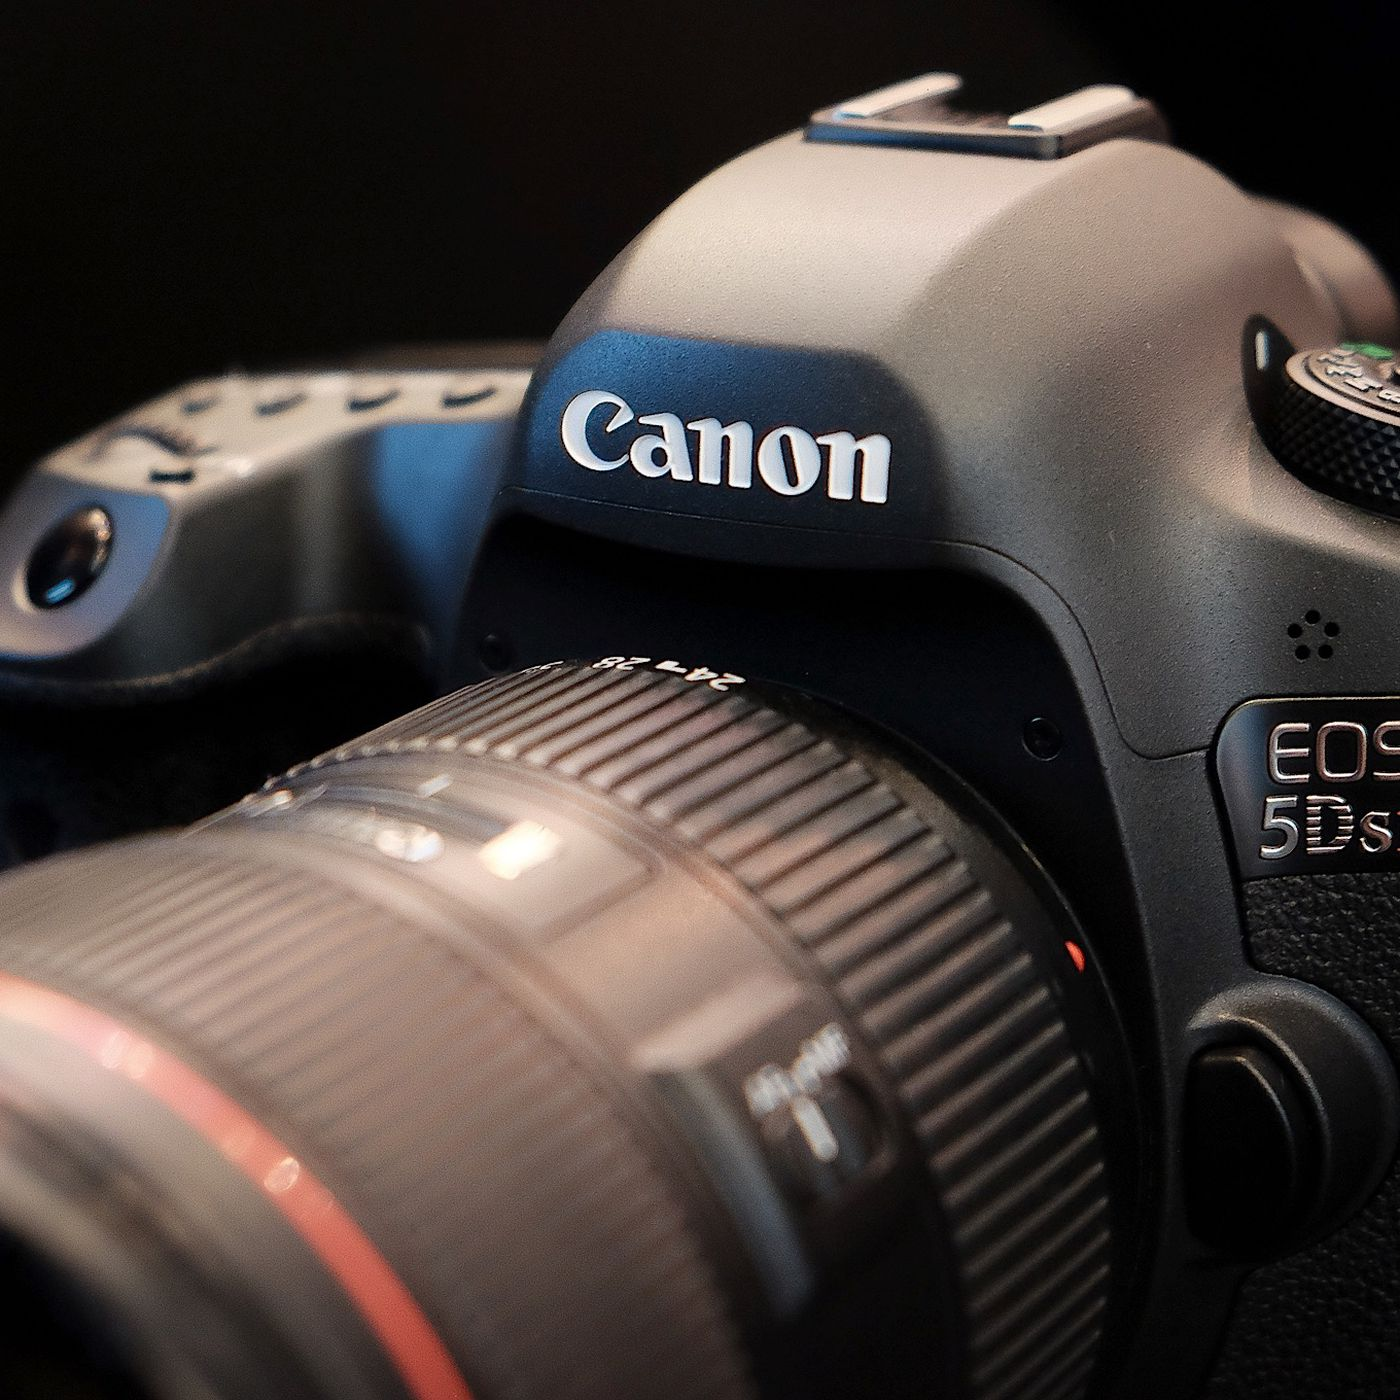 Up close with Canon's impressive new cameras - The Verge